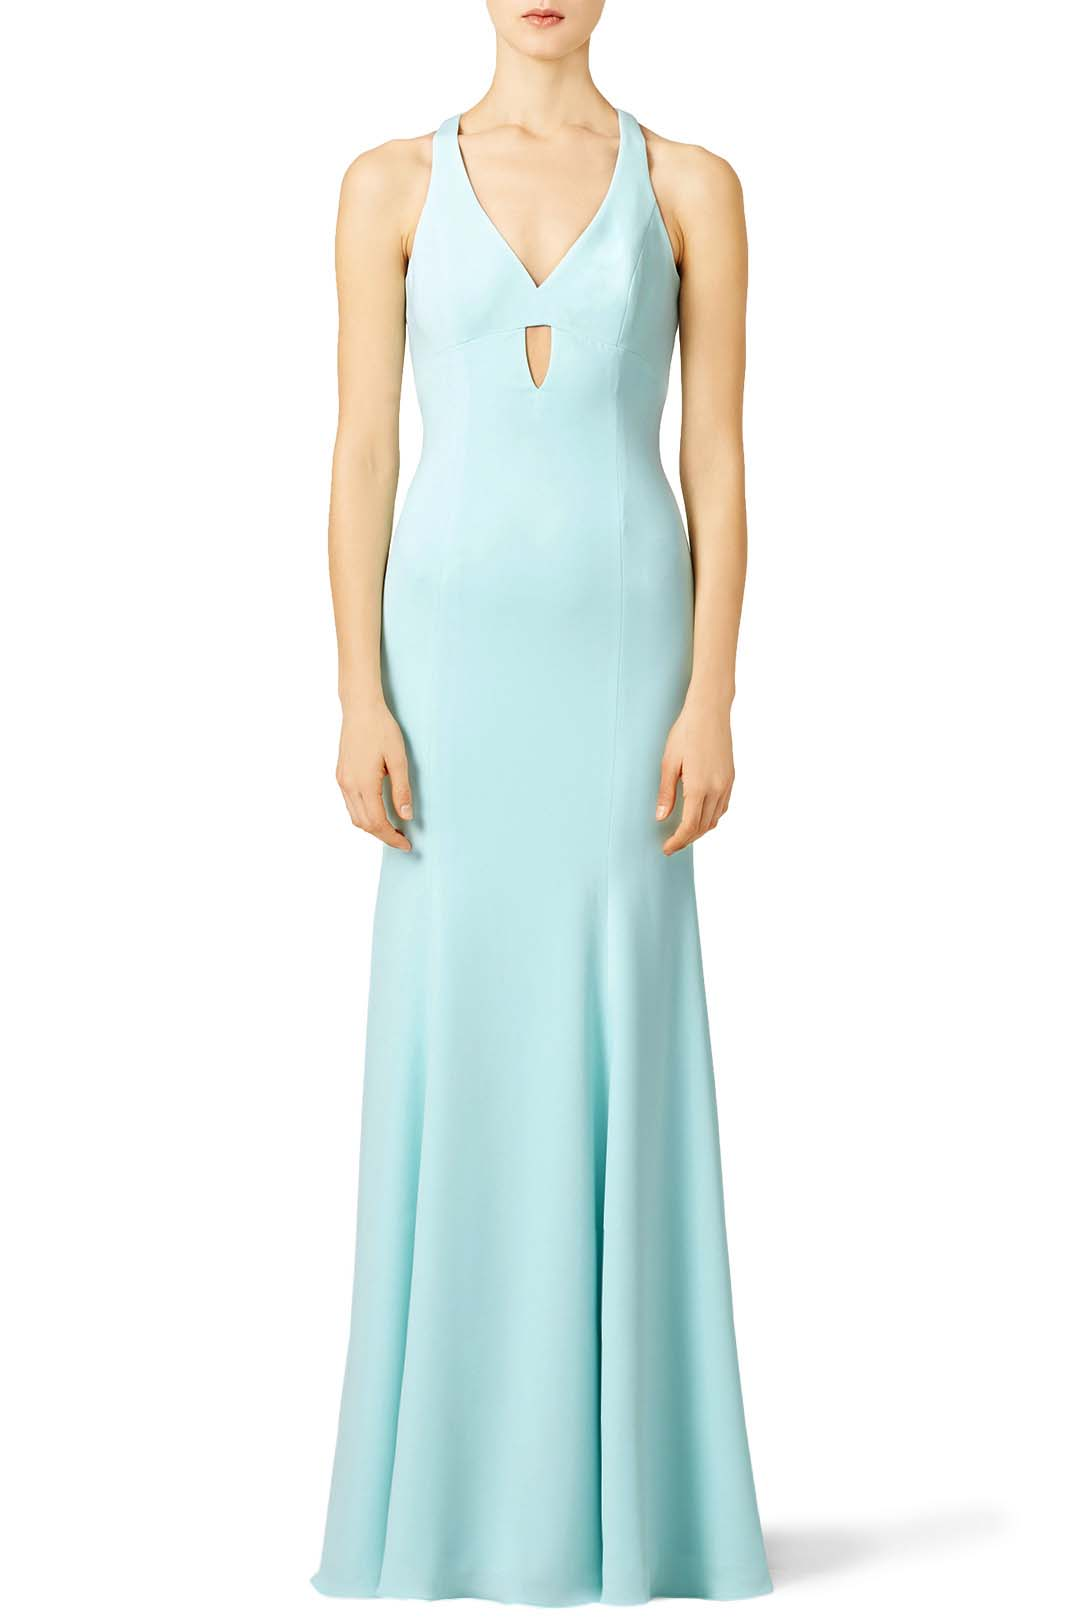 rent the runway jay godfrey aqua diamond cut ball gown